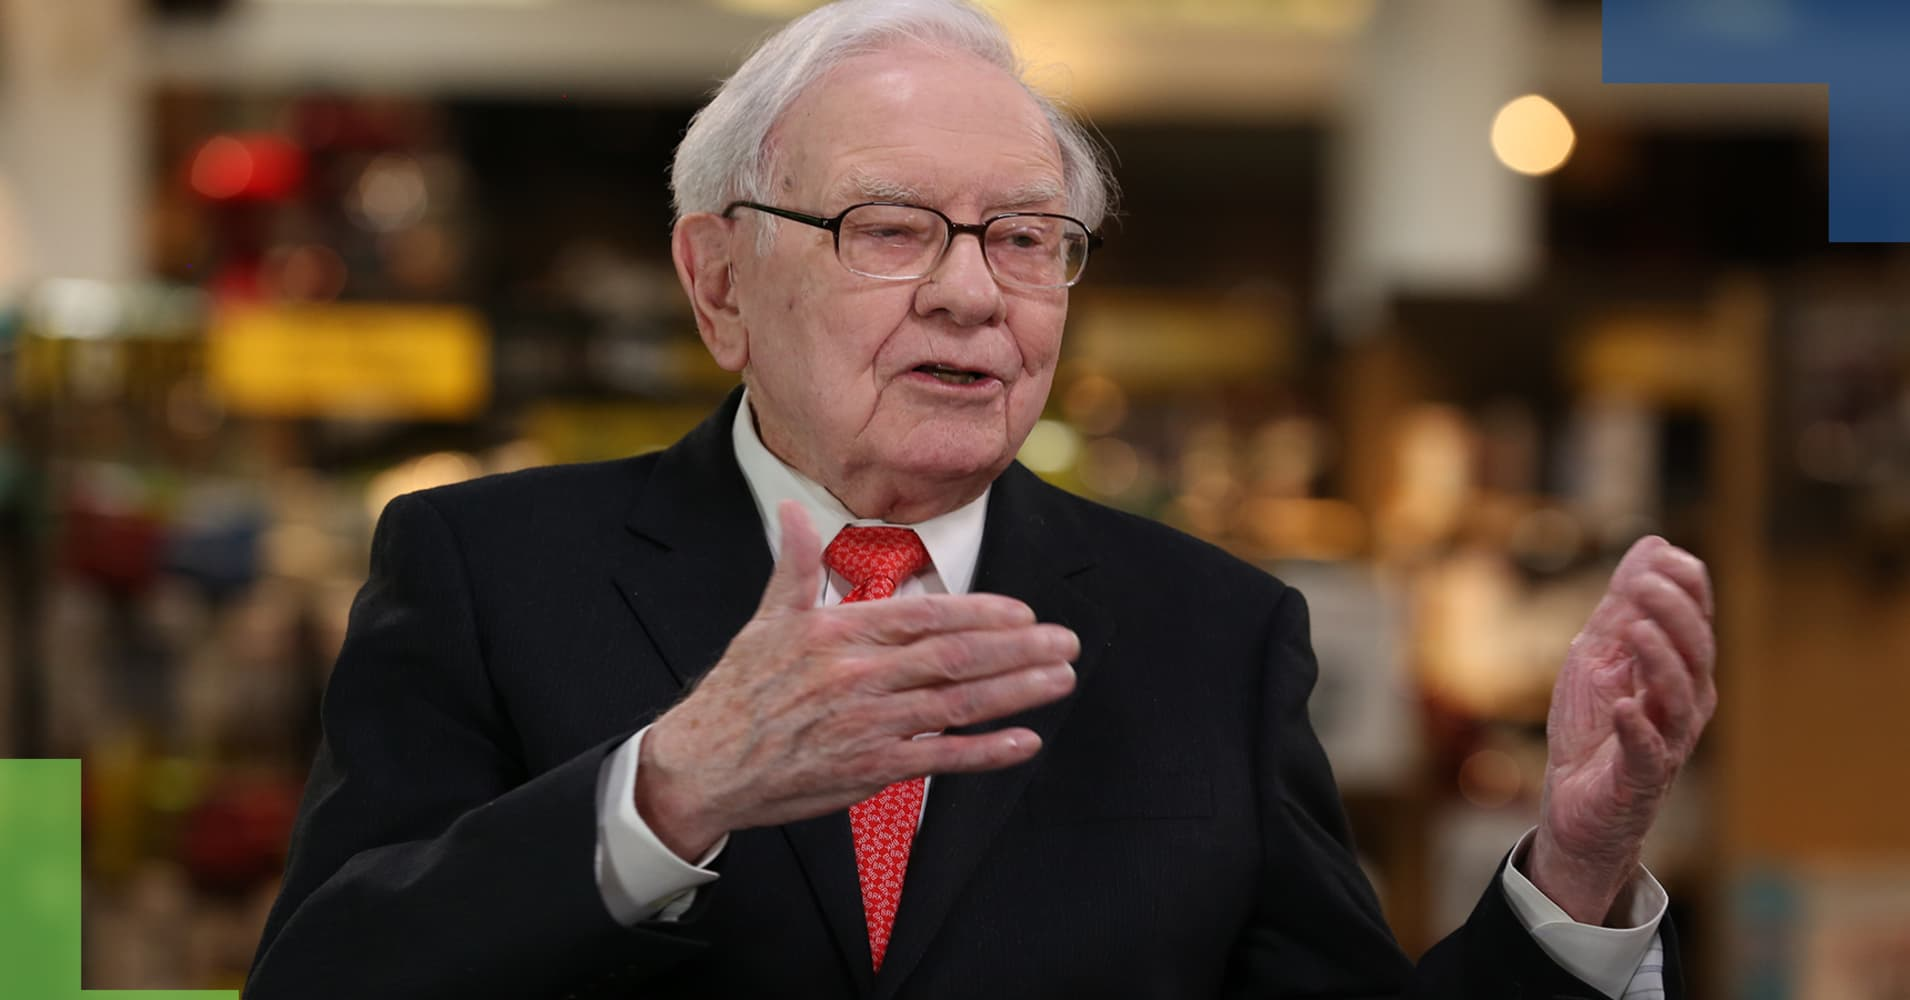 Warren Buffett says there's 'enormous resistance to change' healthcare